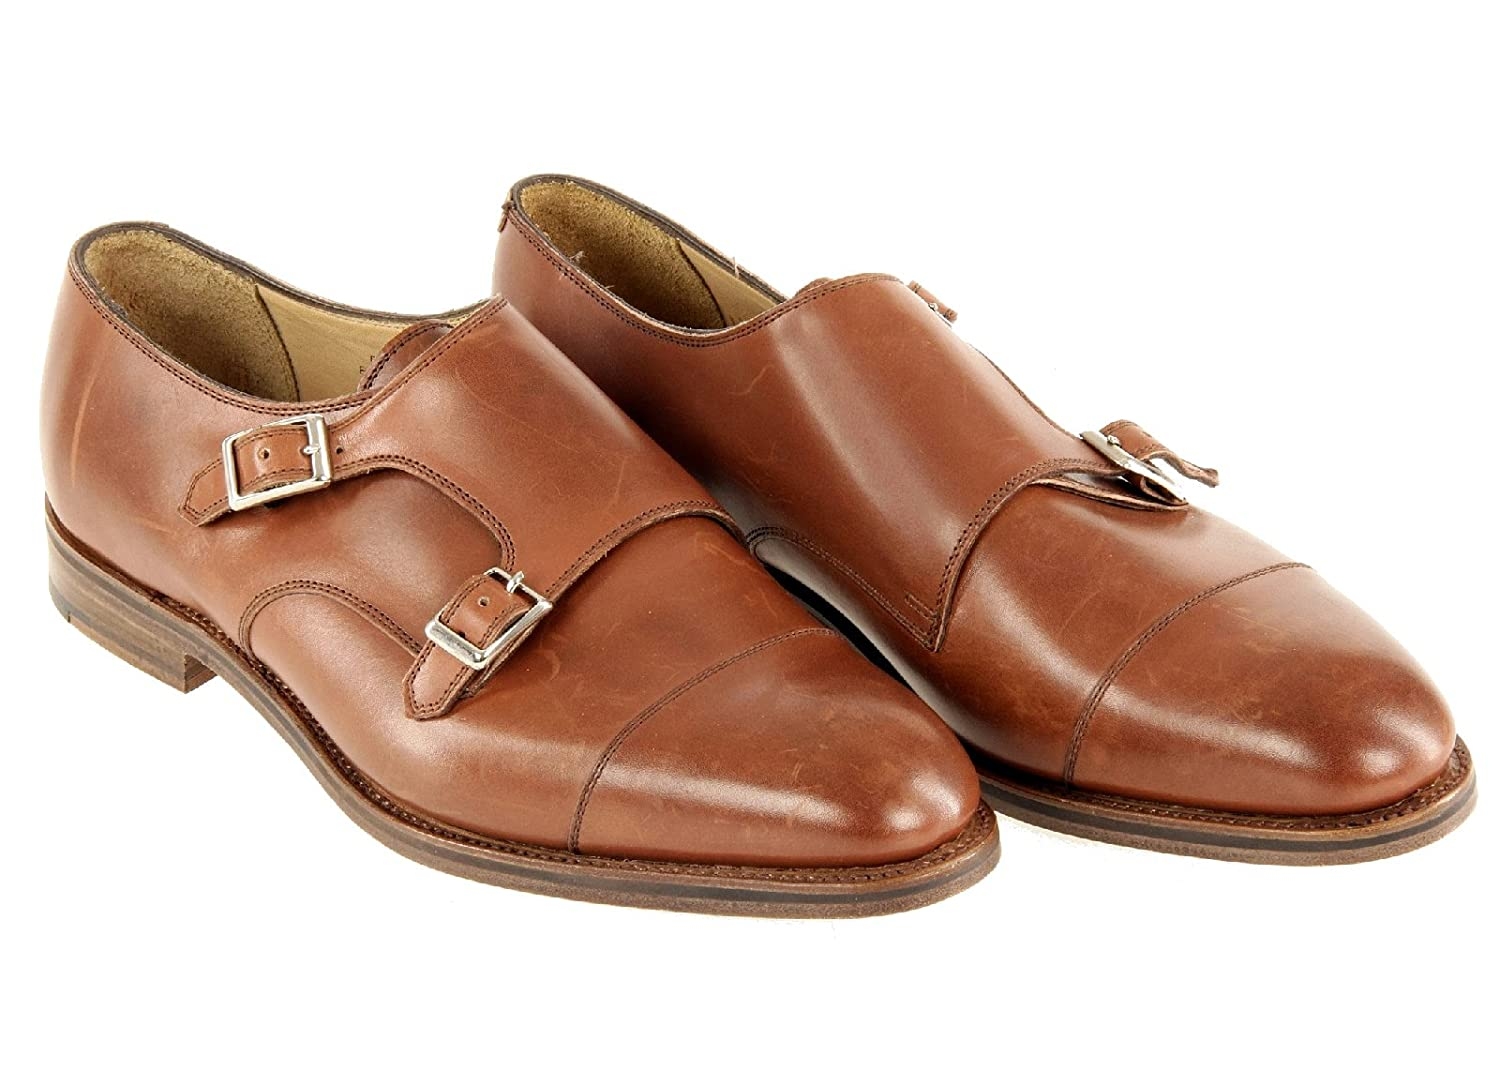 Alfred Sargent For J.Crew Double Monk Strap Shoes 10.5 Style 02801 Mahagony